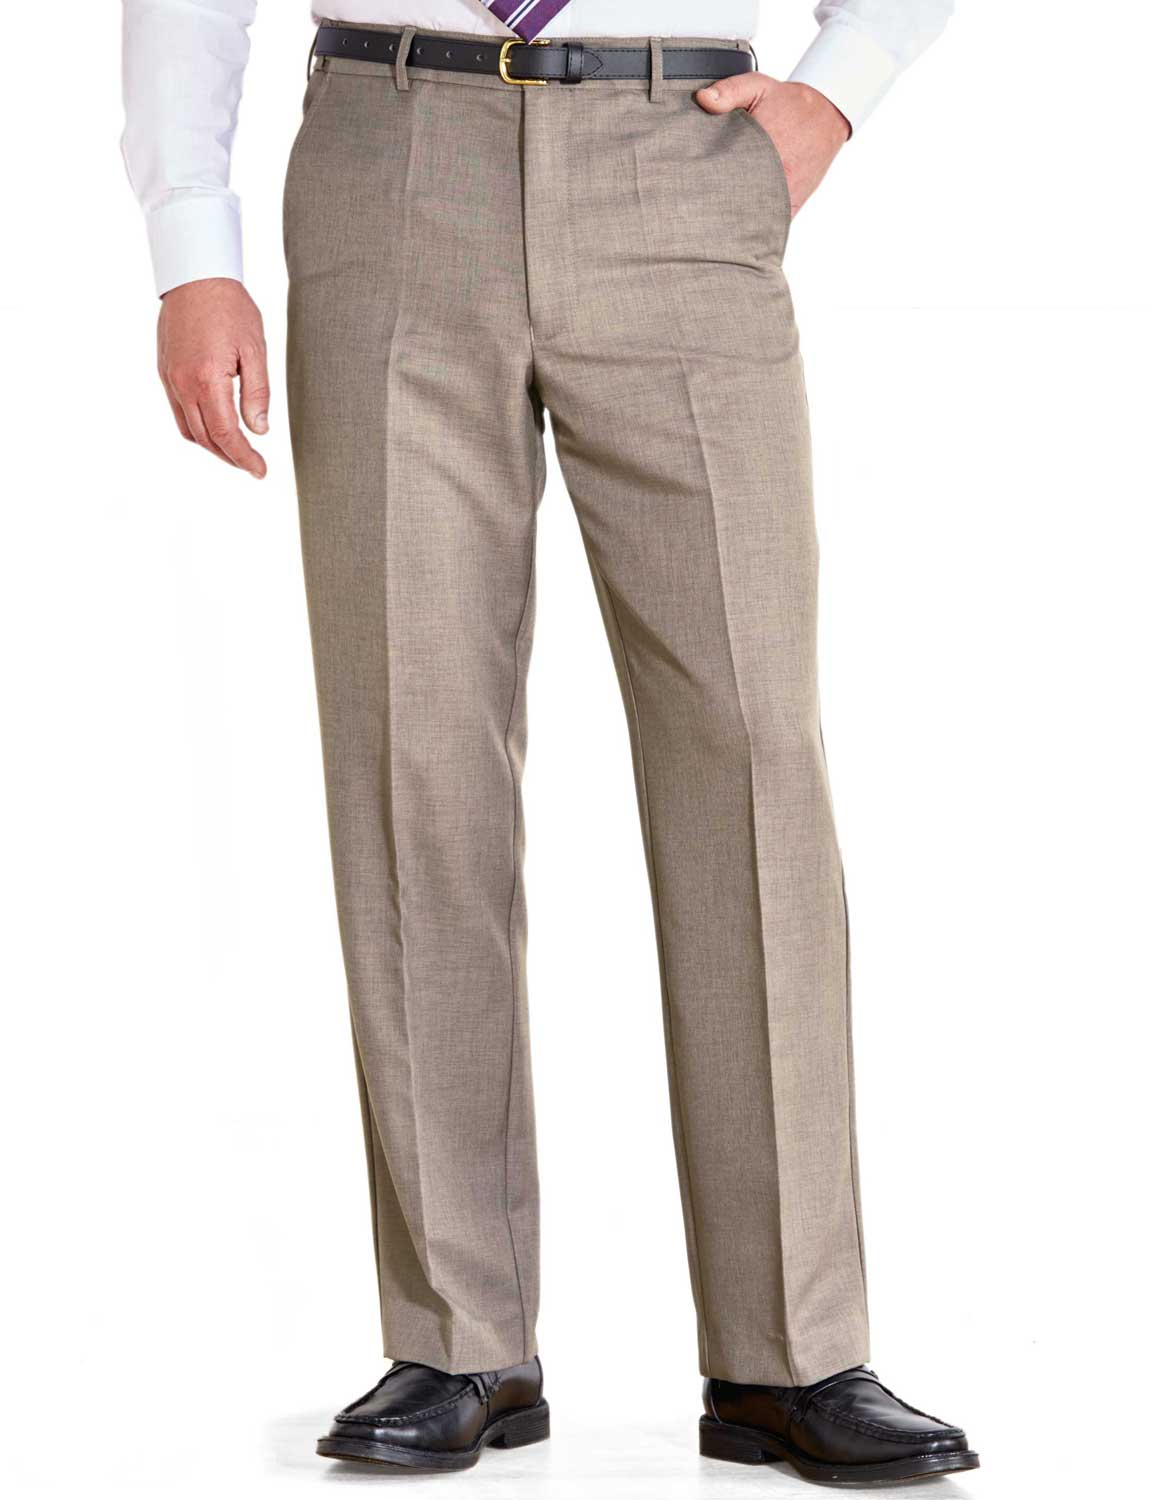 Mens-Farah-Flex-Trouser-Pants-With-Self-Adjusting-Waistband thumbnail 2